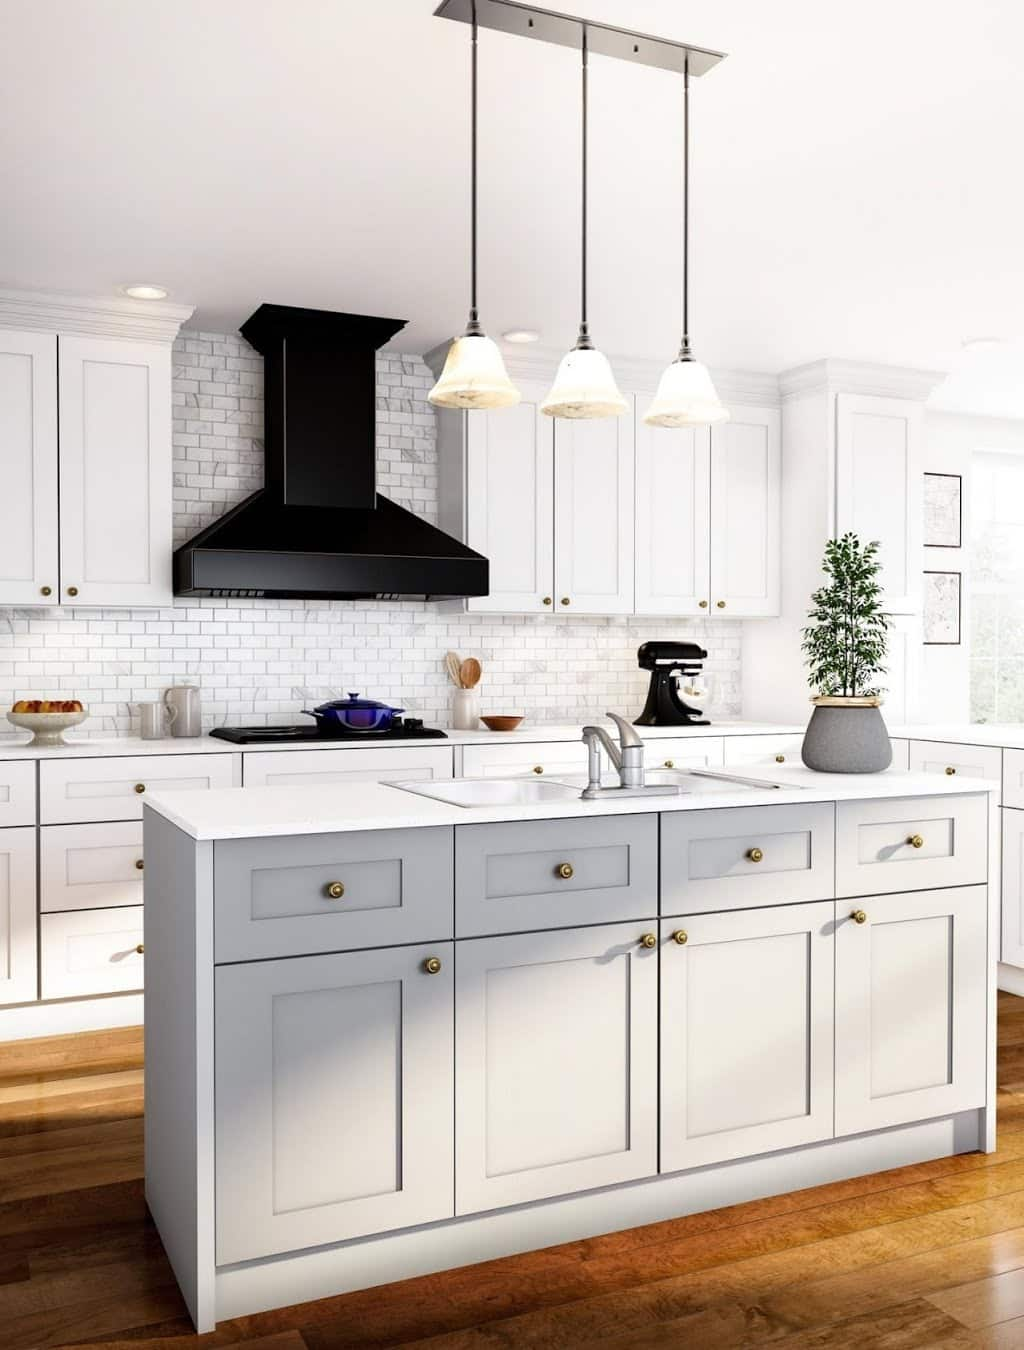 Open White Kitchen with Contrasts